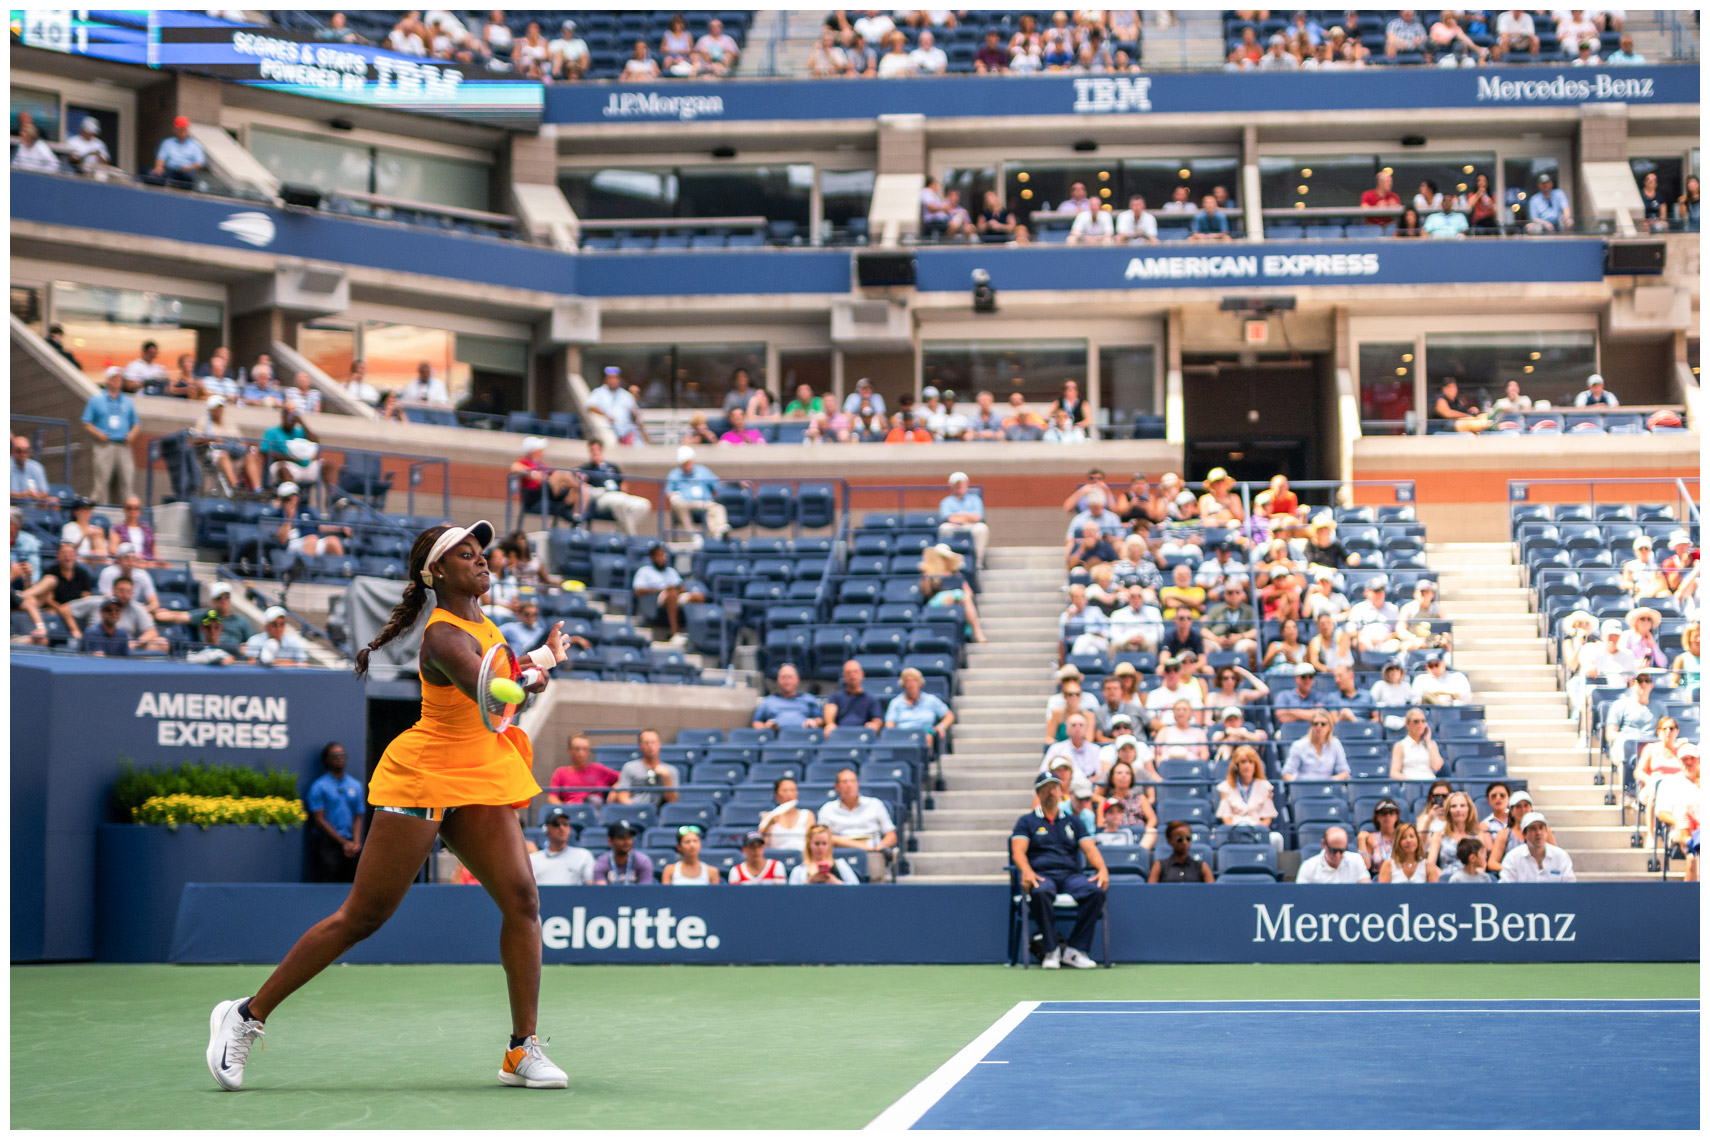 sloane-stephens-action-f-us-open-tennis-mercedes-benz-ambassador